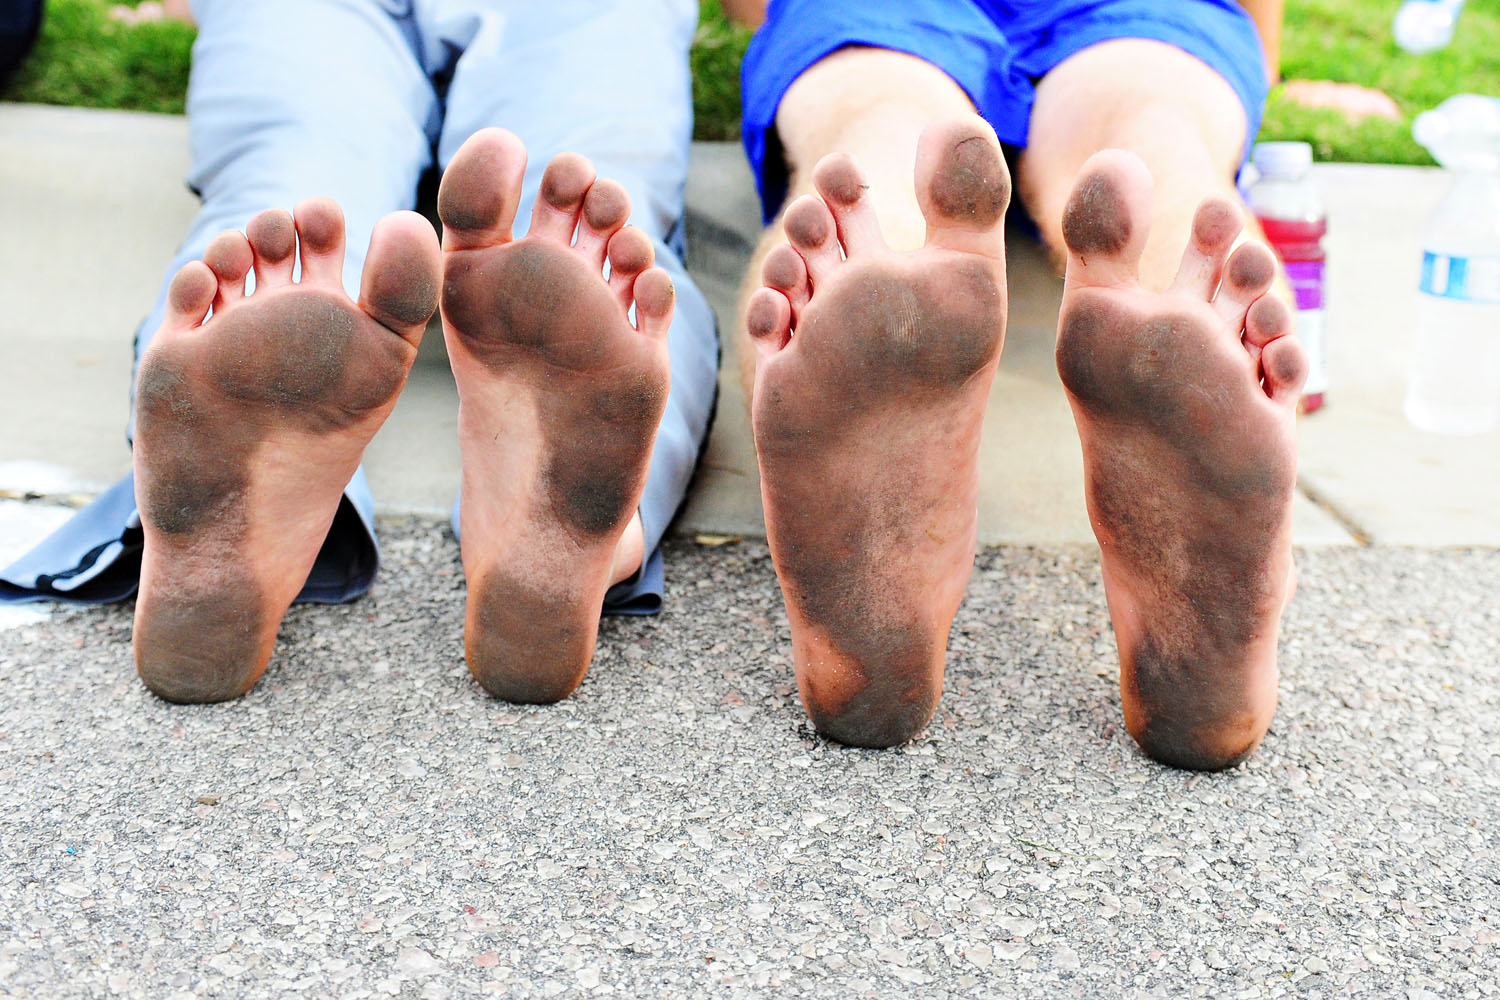 """These guys ran the National Ovarian Cancer Coalition 5k without any shoes on. They were preparing for a """"Barefoot Run."""""""